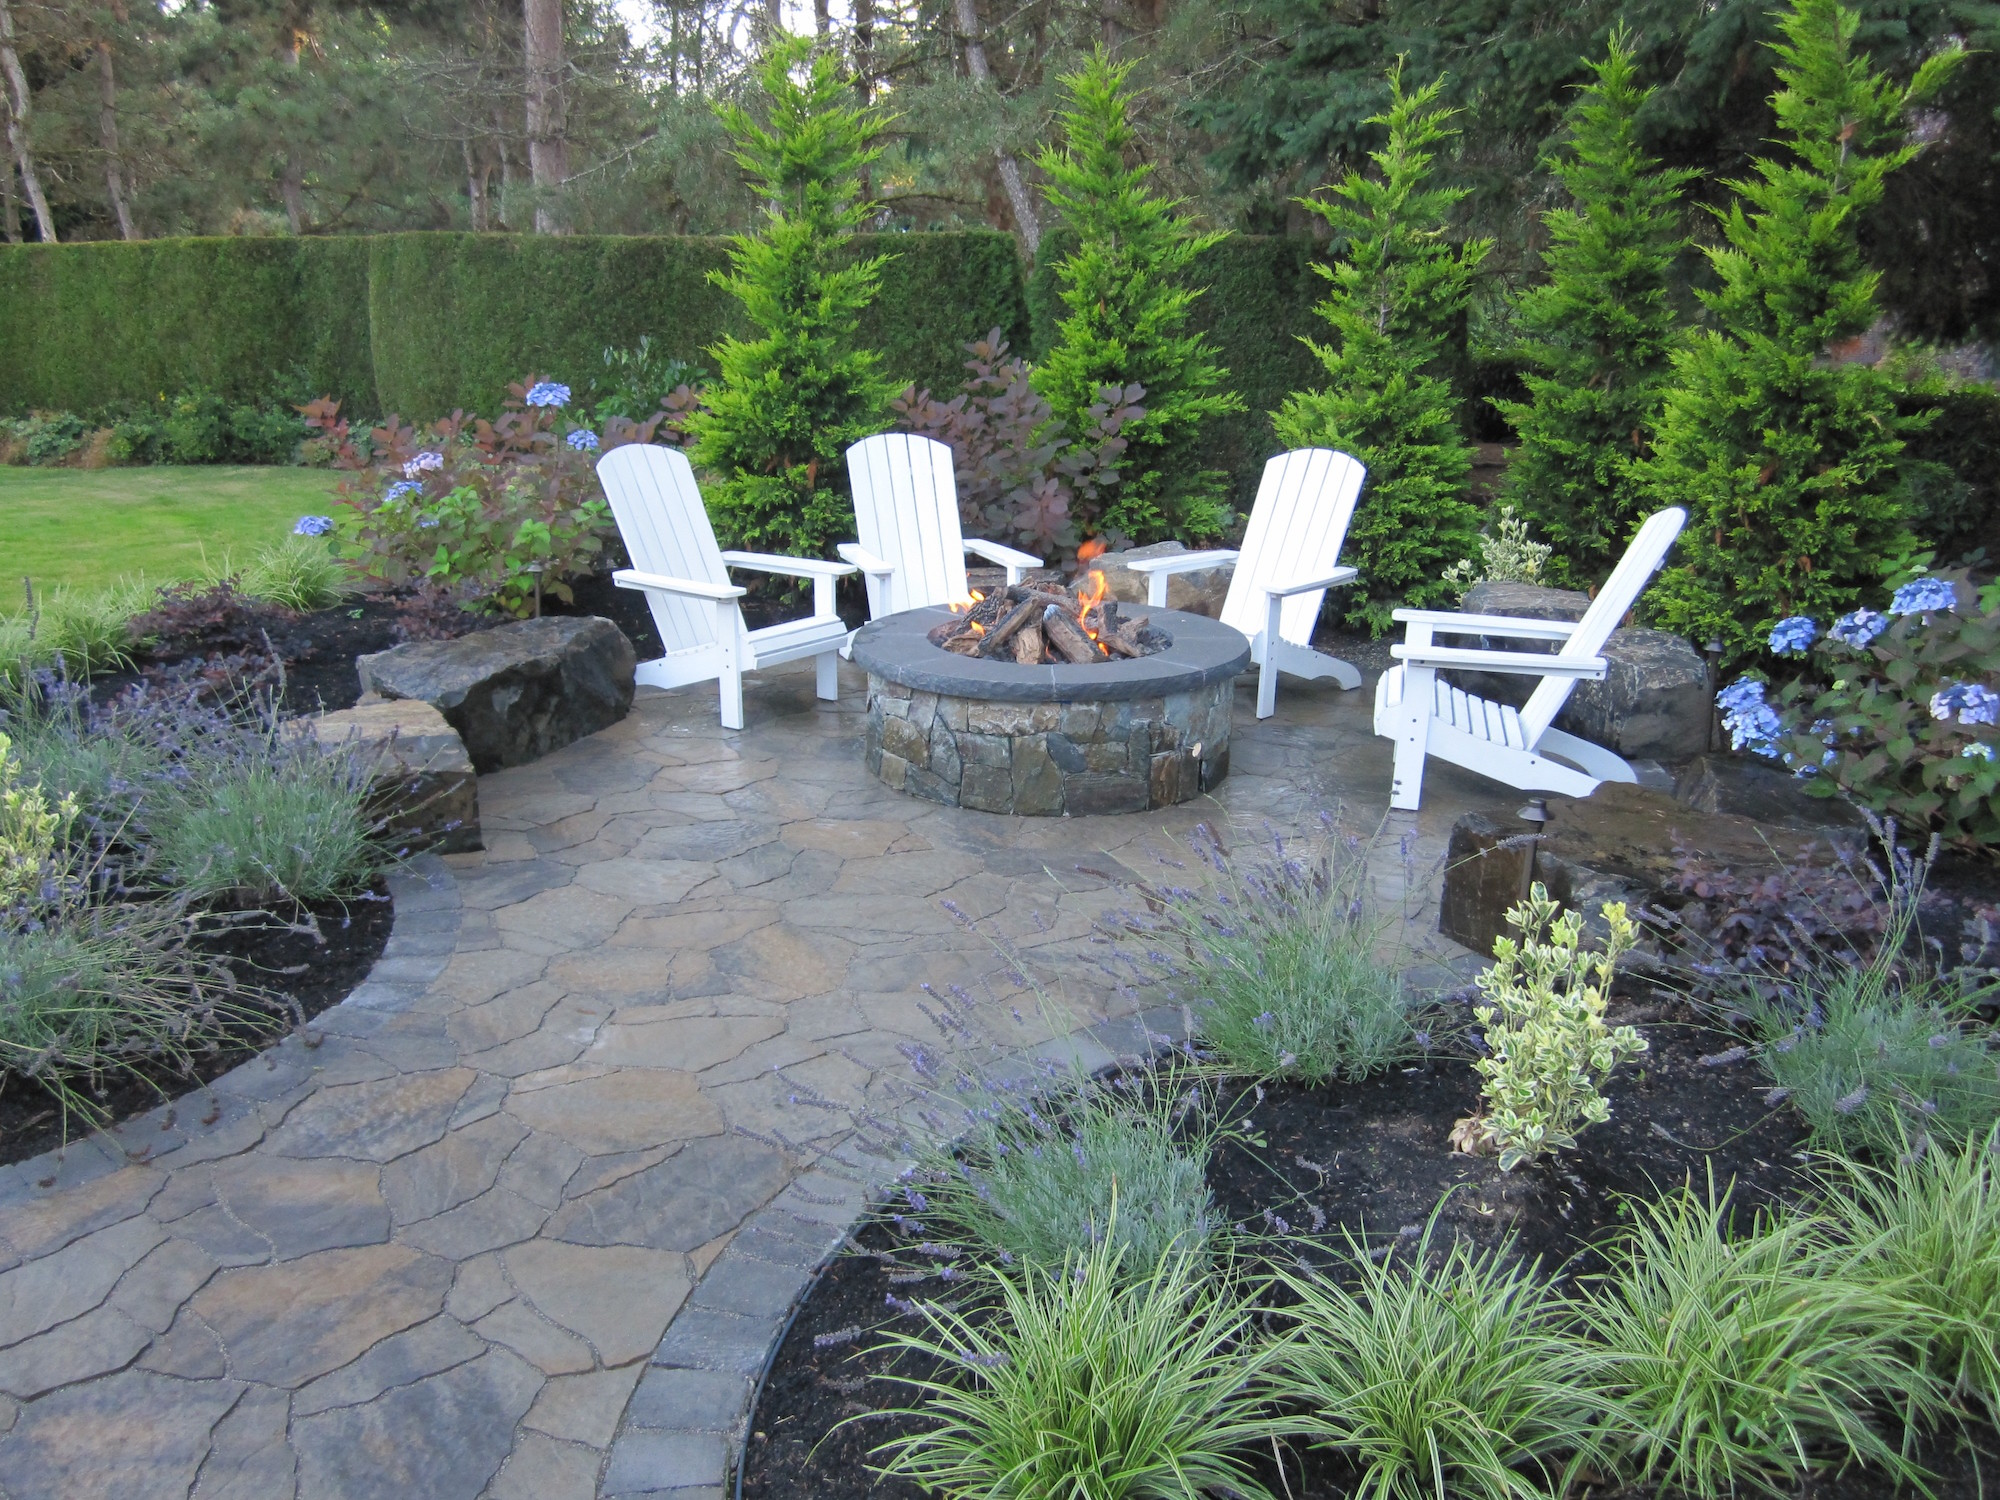 Backyard ideas reddit 28 images prestige lawn care for Garden design reddit